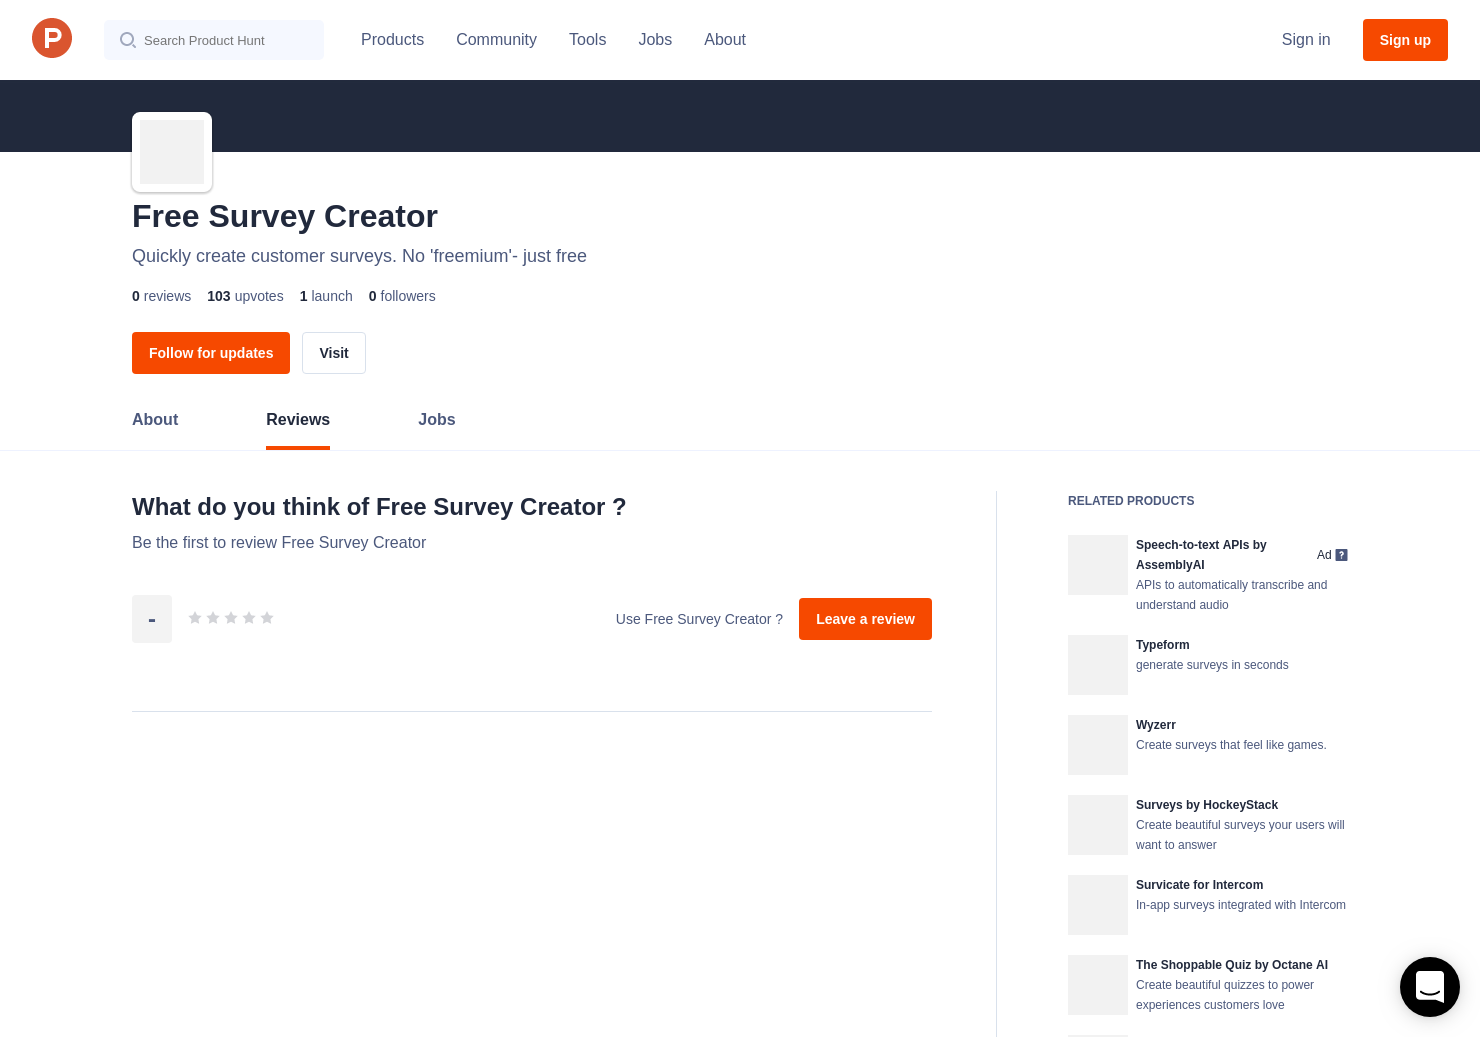 free survey creator reviews pros cons and rating product hunt